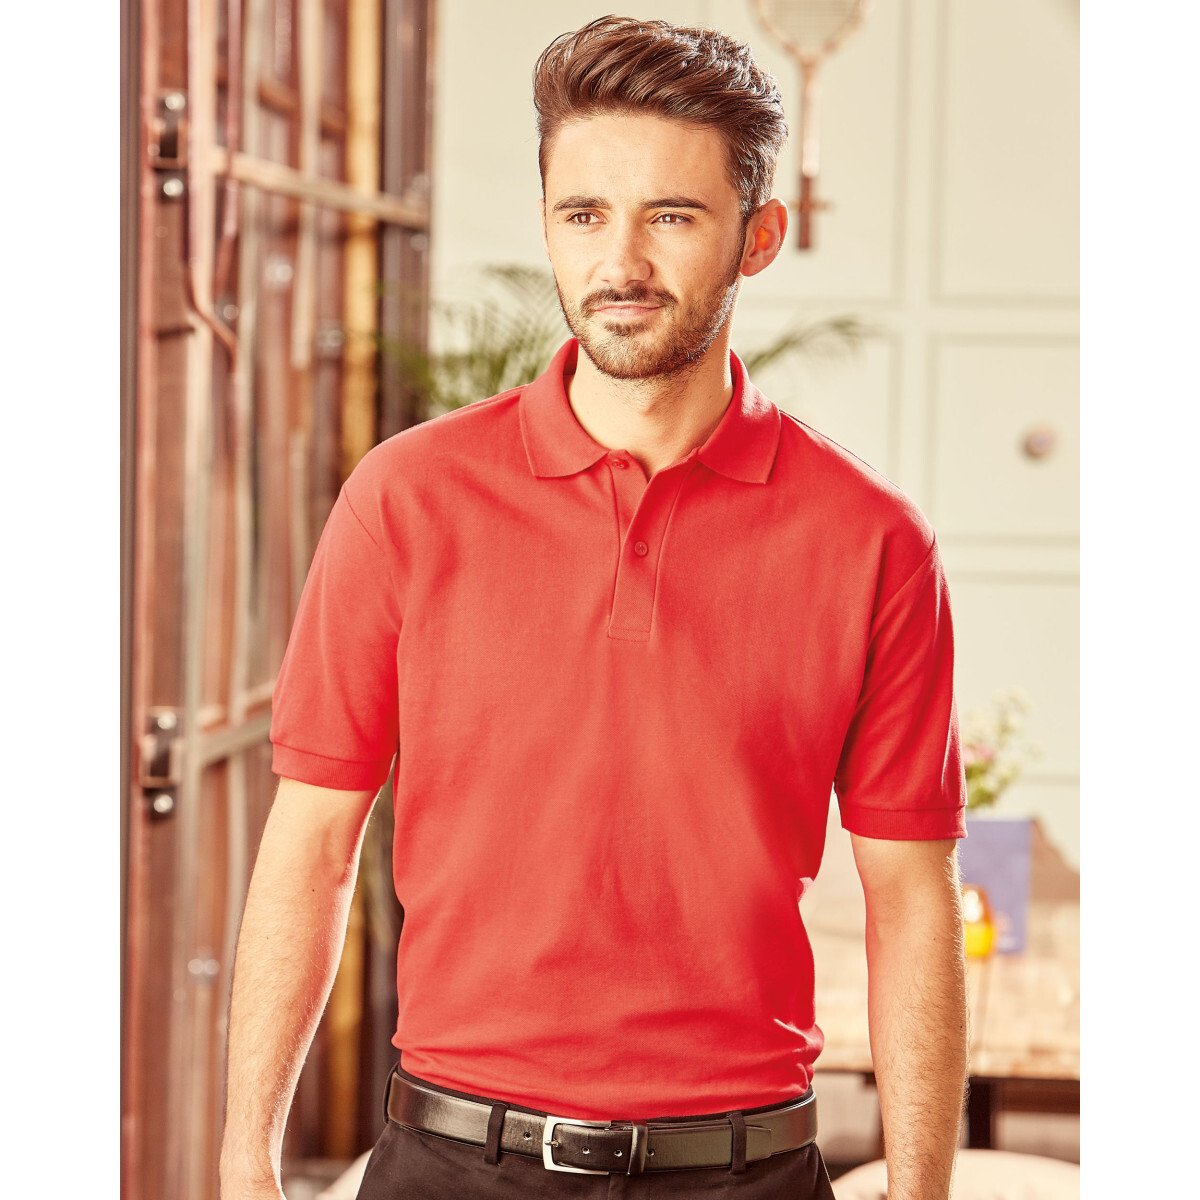 Russell 539M Men's Classic Polycotton Polo Shirt 3XL to 6XL